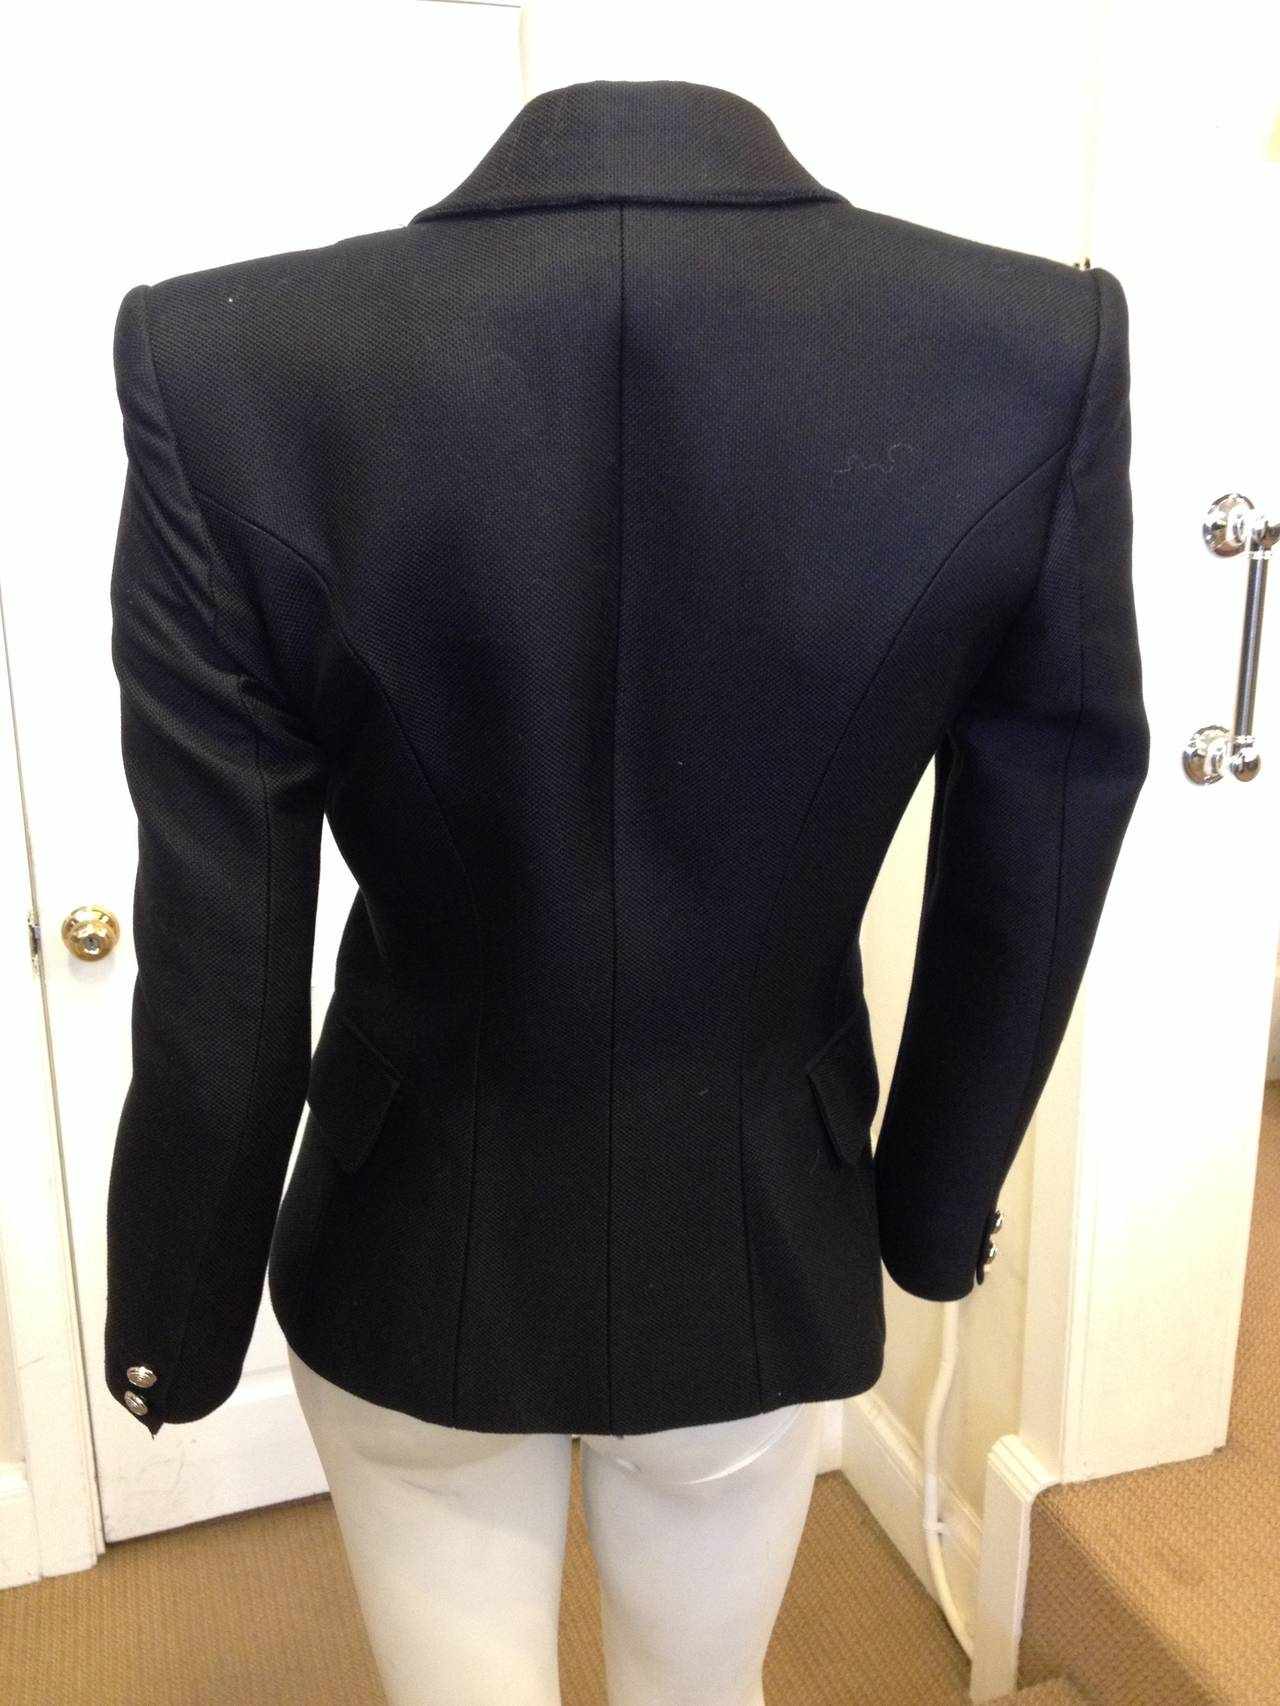 Balmain Black Blazer with Silver Buttons 6